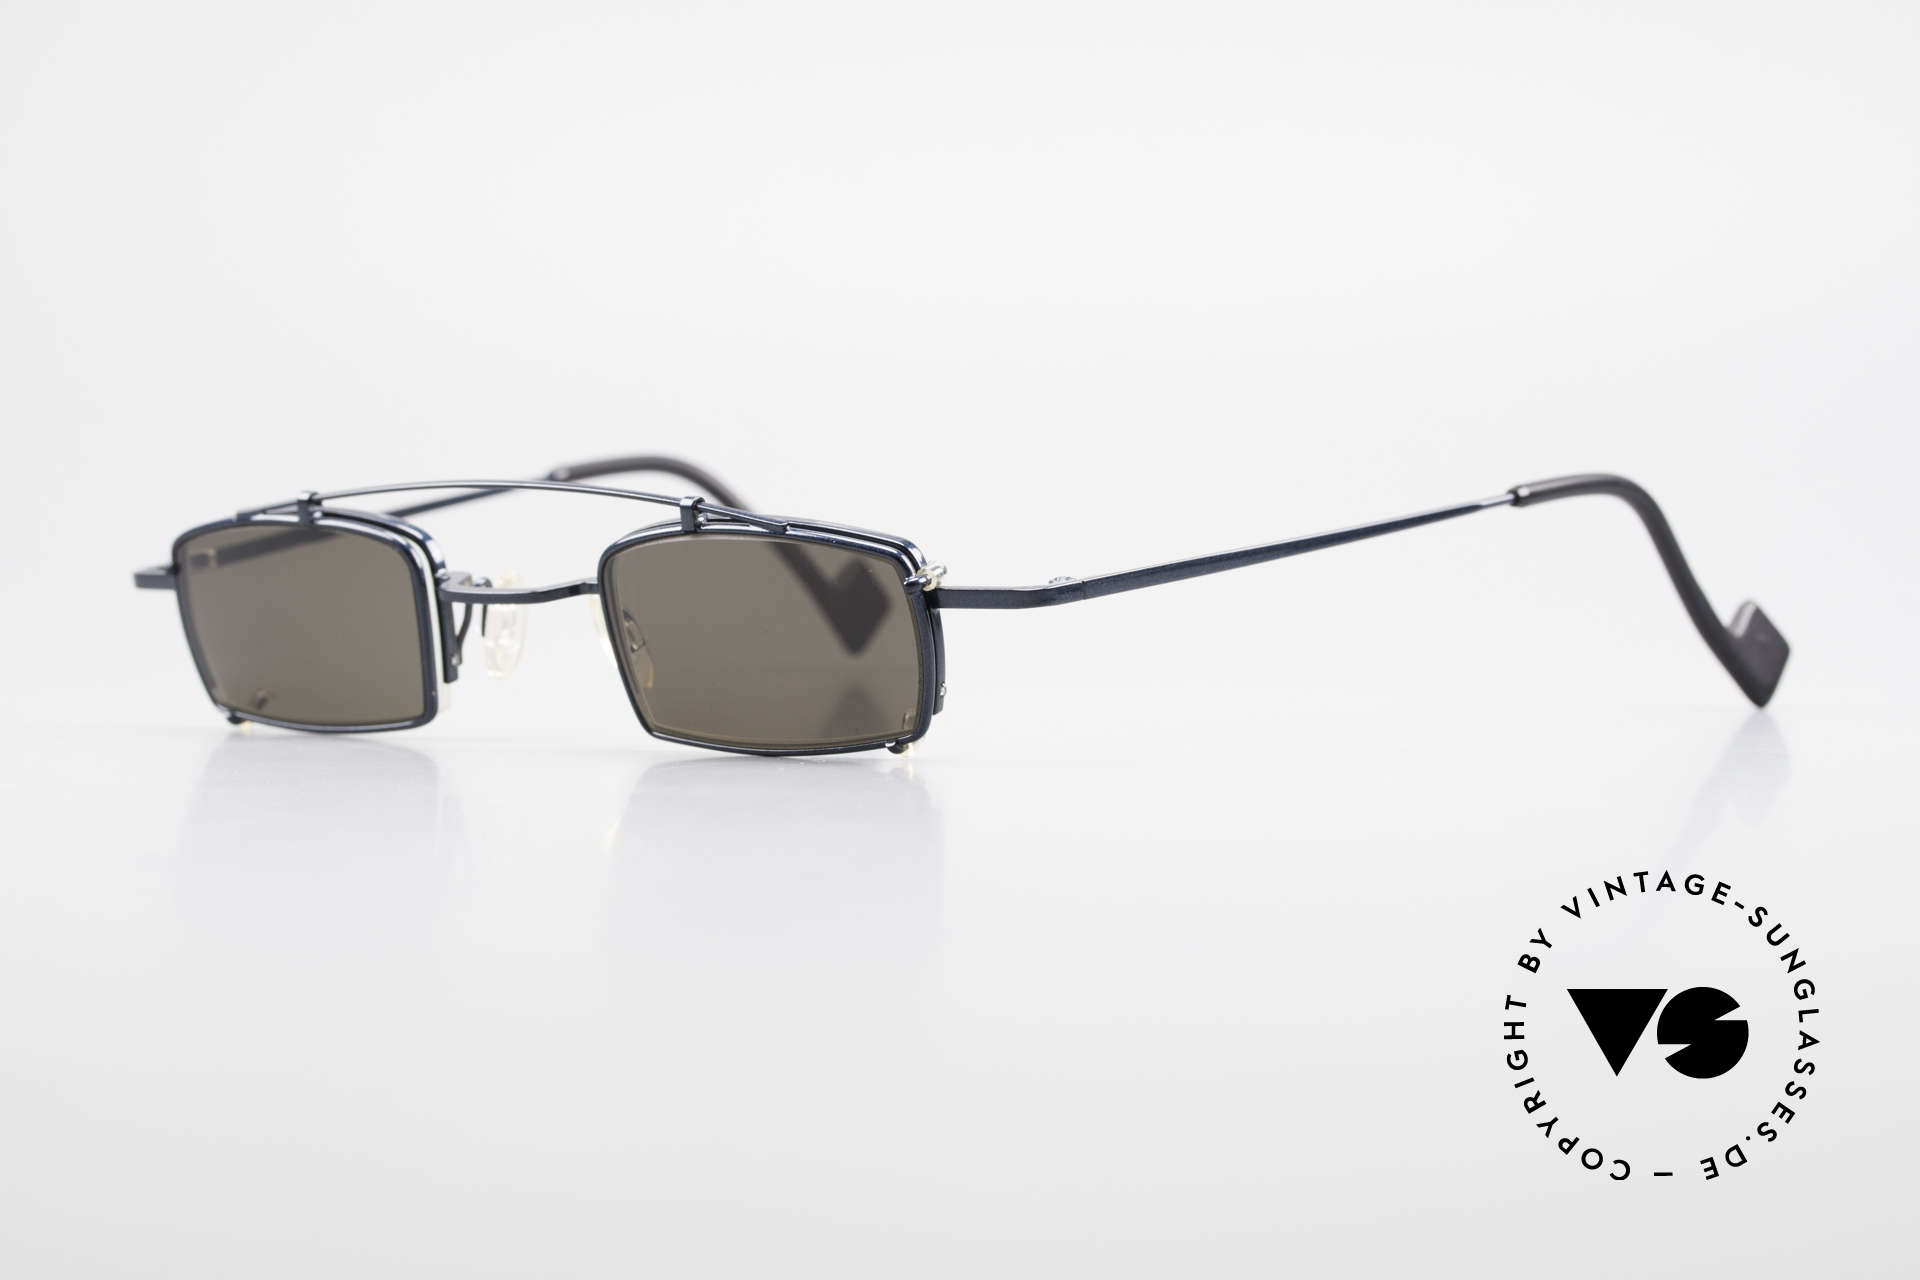 Theo Belgium Mele Square Clip On Designer Frame, made for the avant-garde, individualists, trend-setters, Made for Men and Women